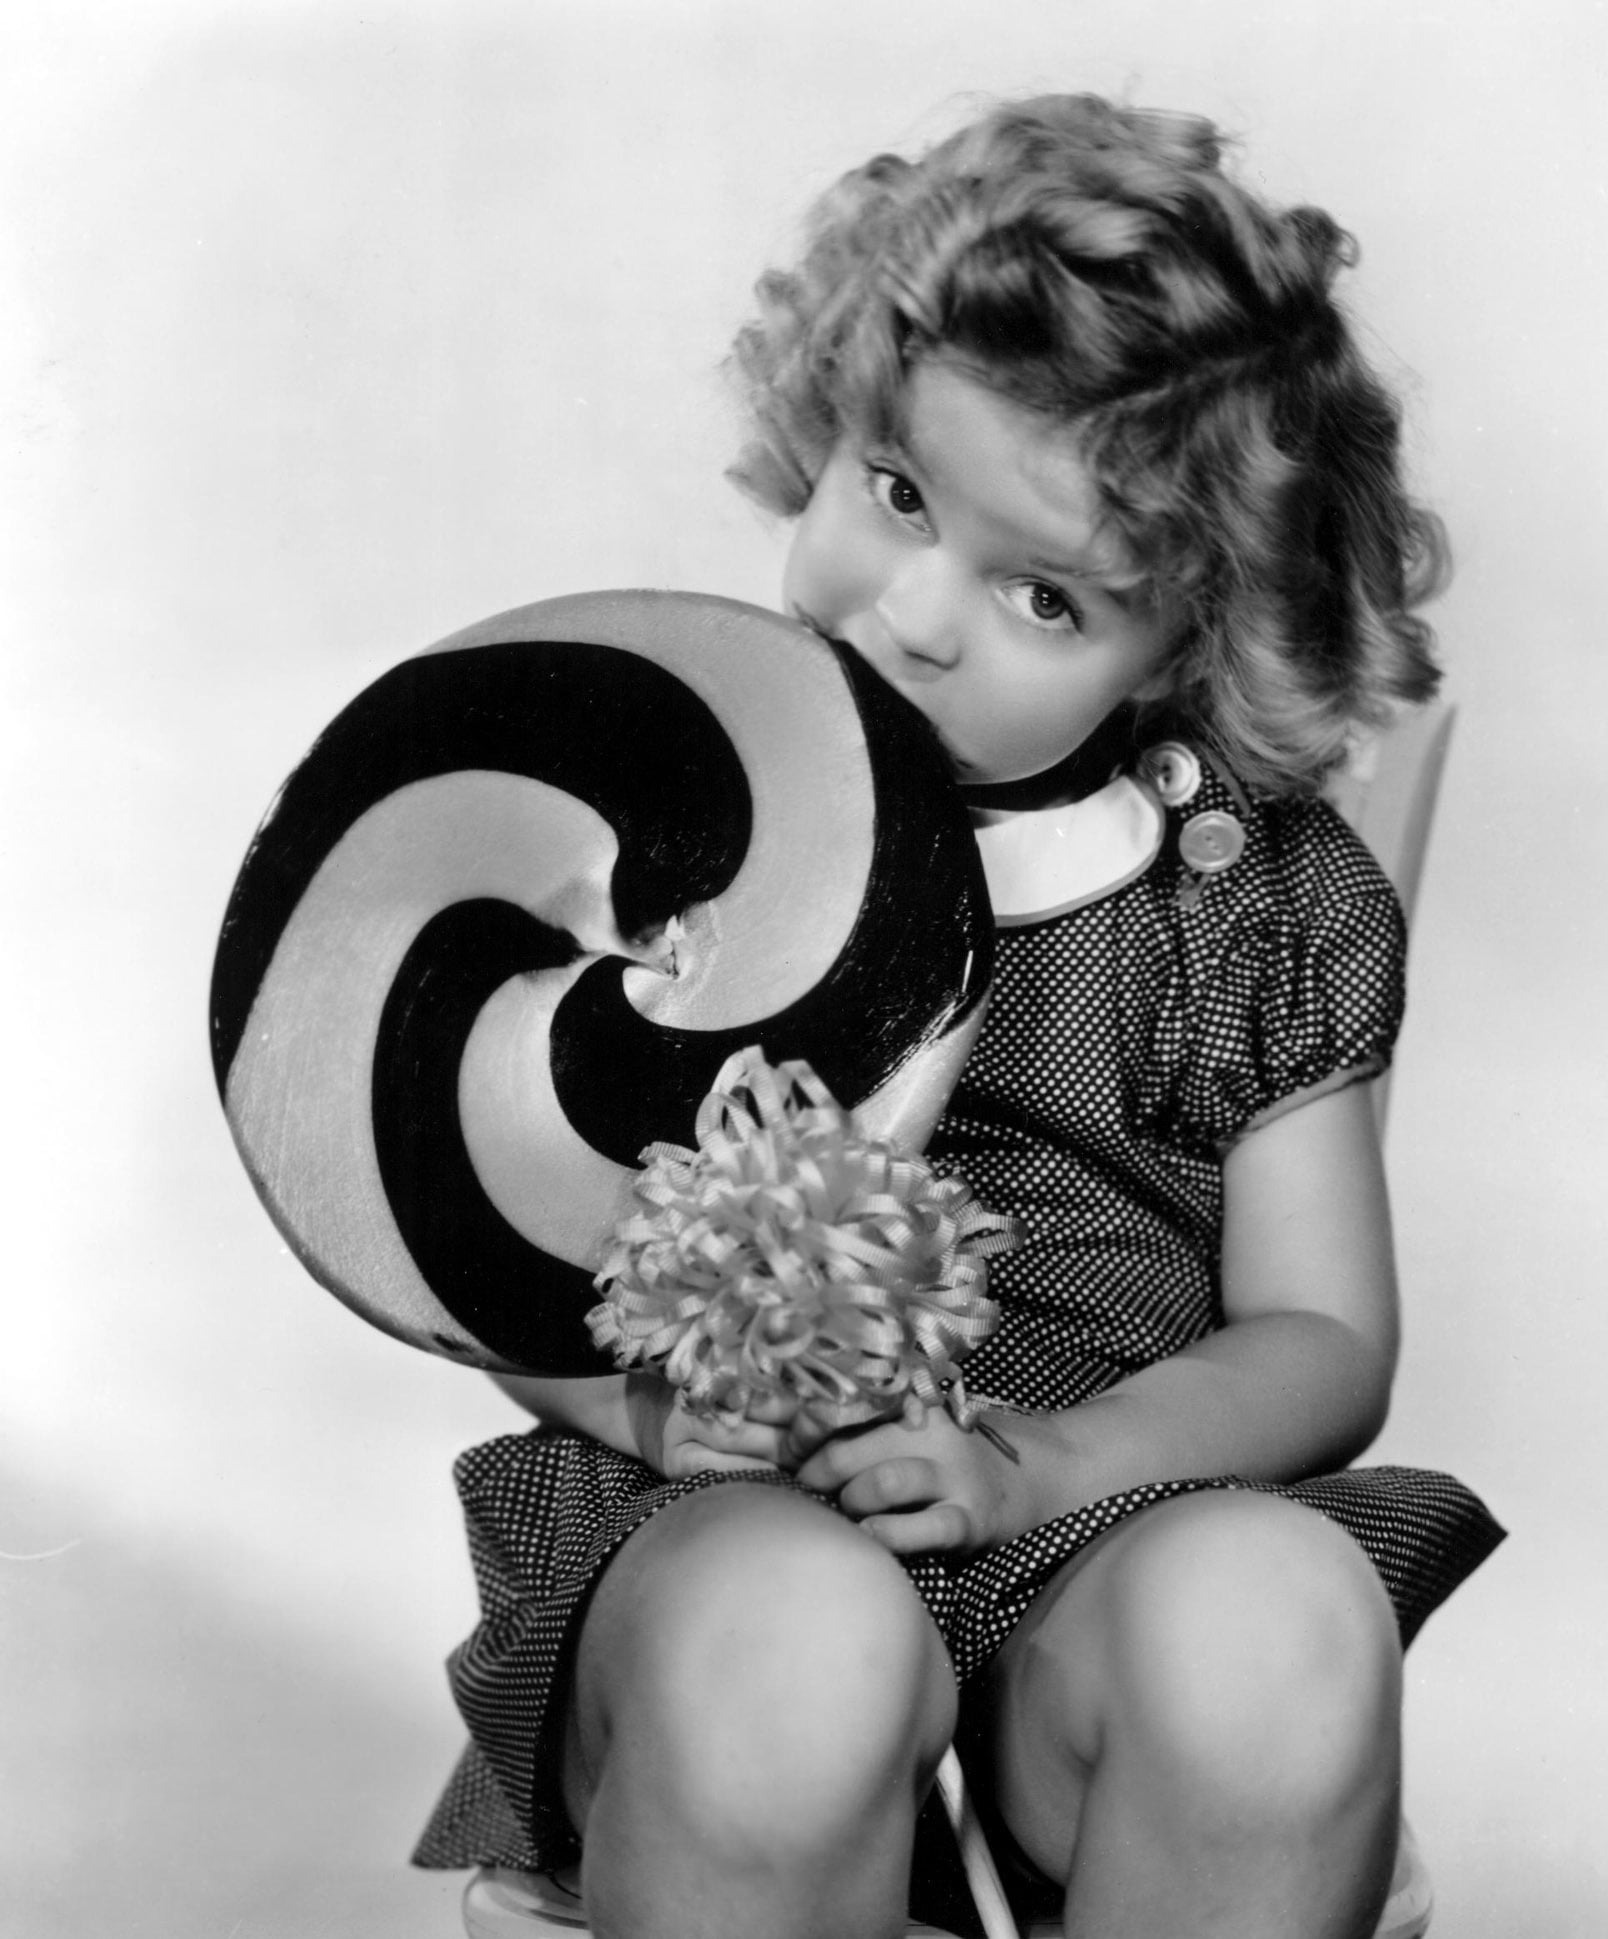 BRIGHT EYES, Shirley Temple, 1934, eating a big lollipop